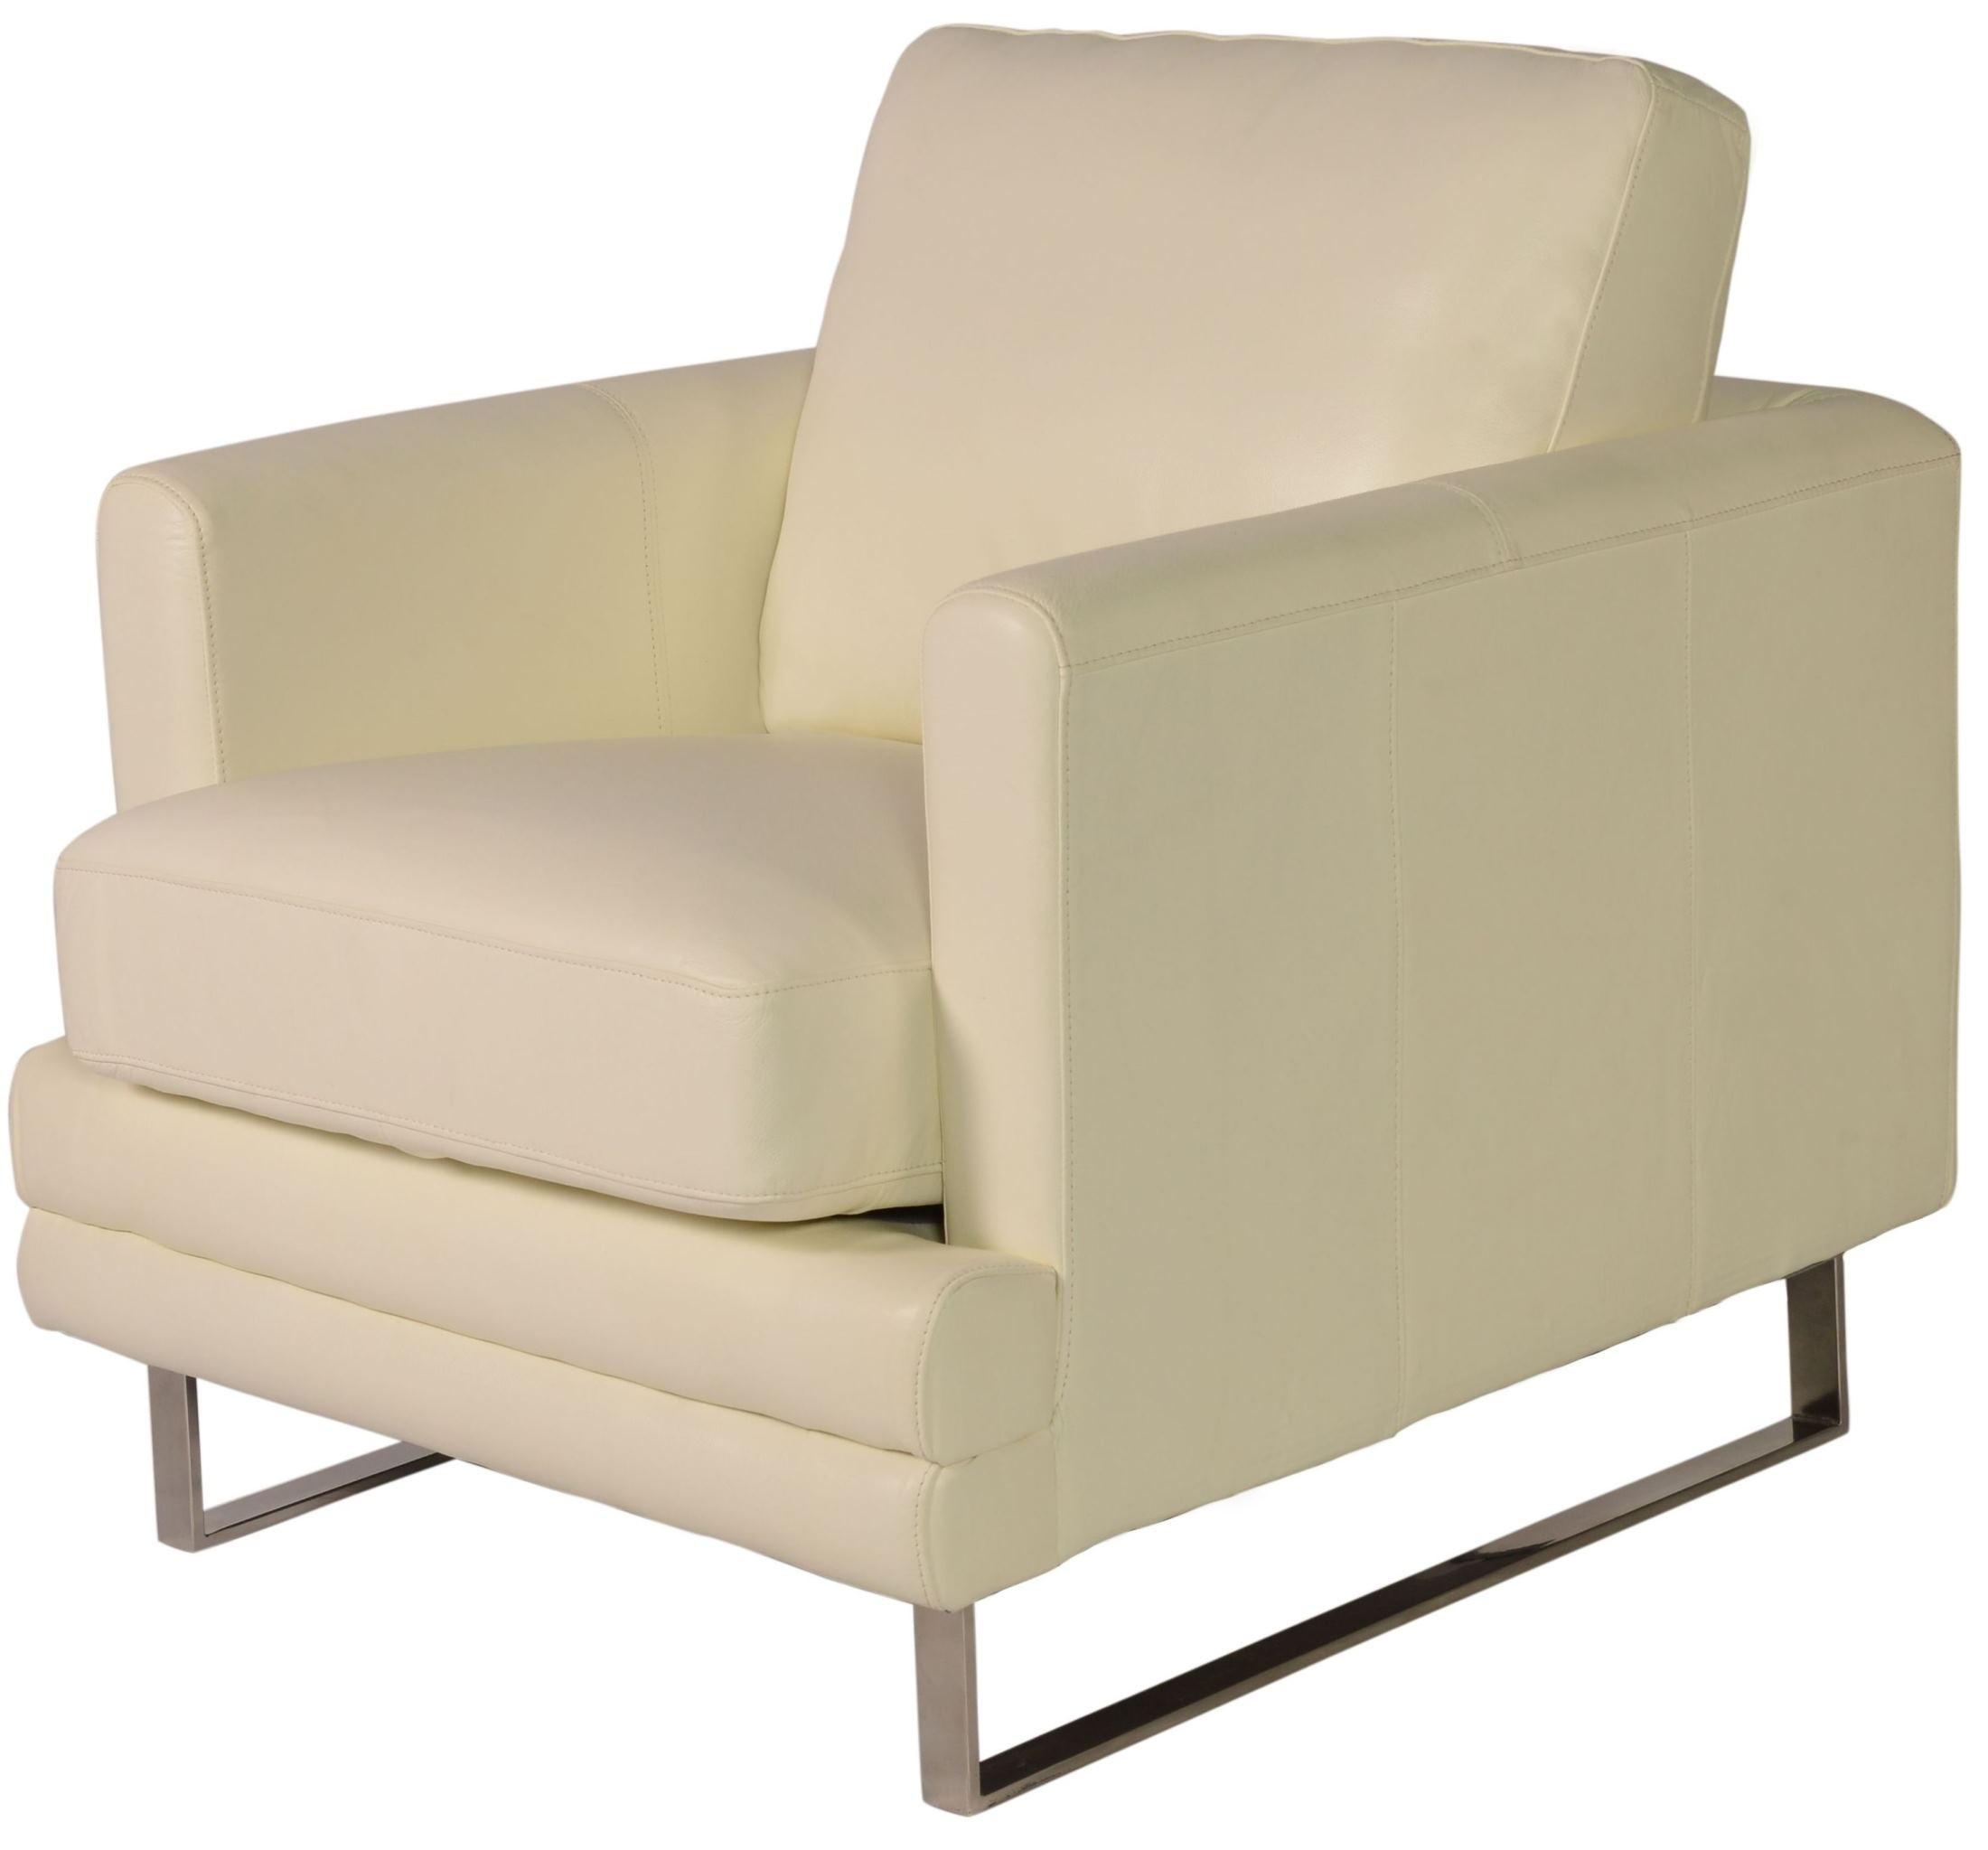 Melbourne White Leather Chair From Lazzaro Wh 1003 10